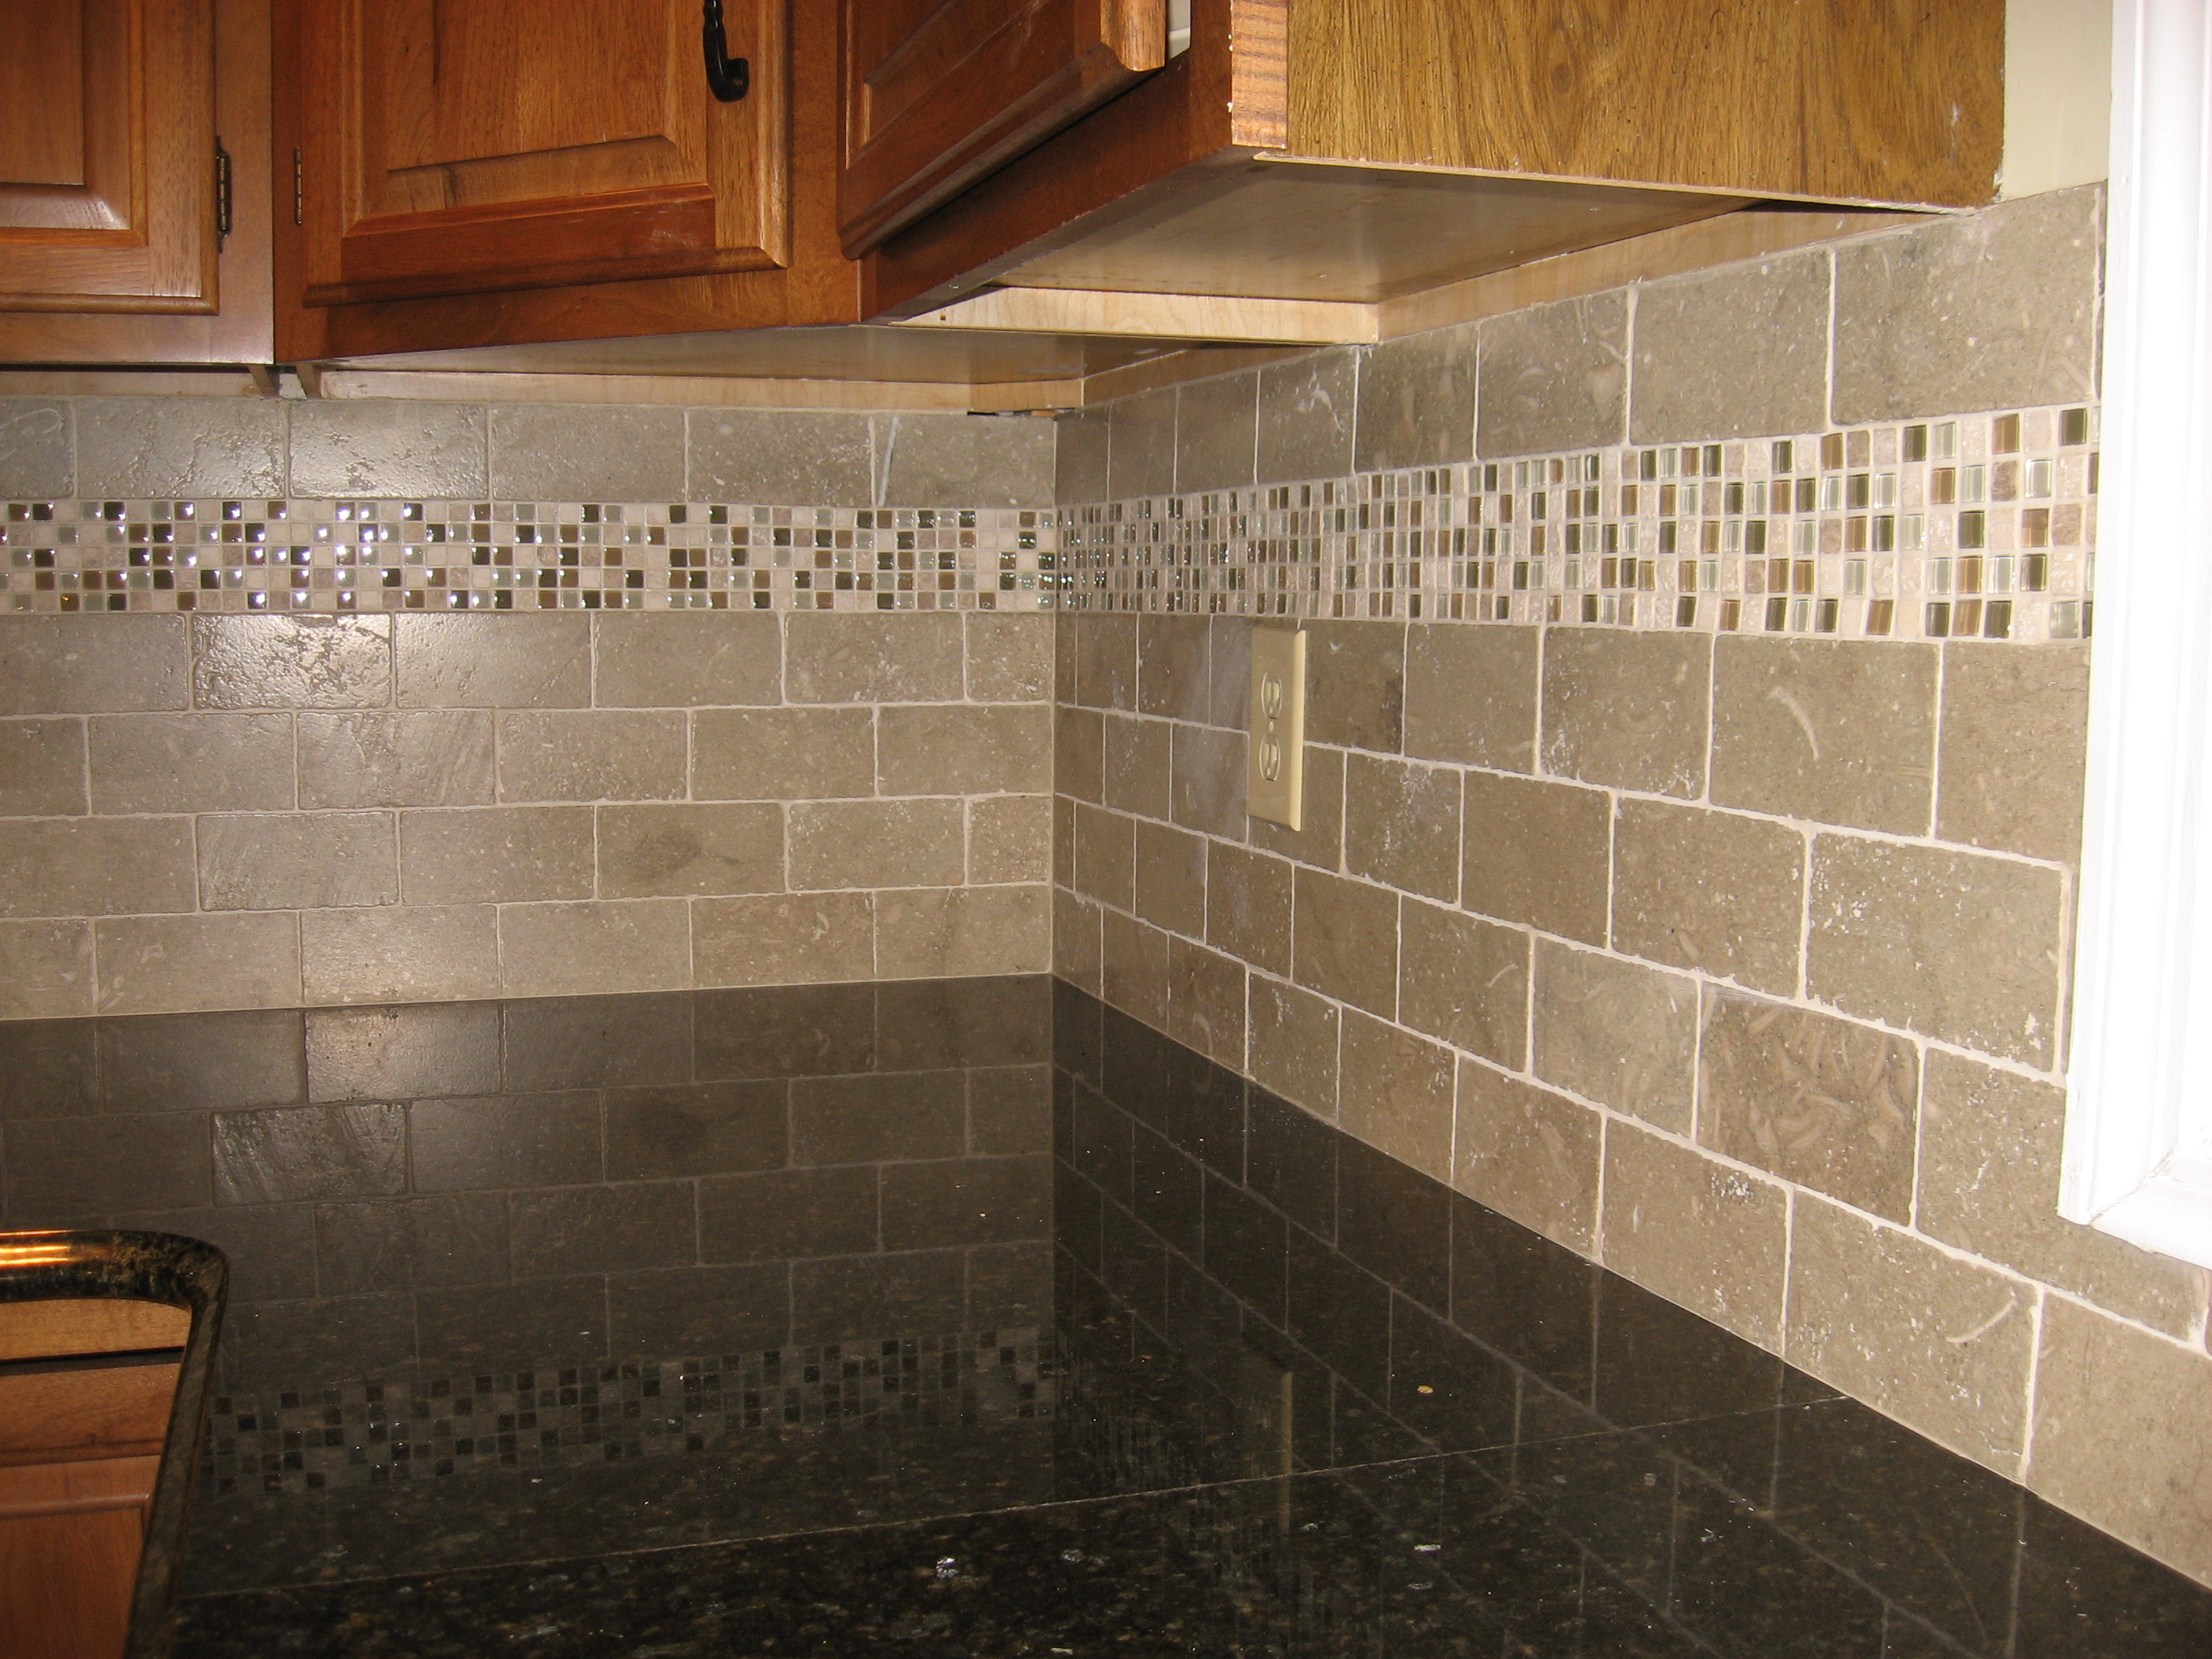 Kitchens Backsplash mosaic tile